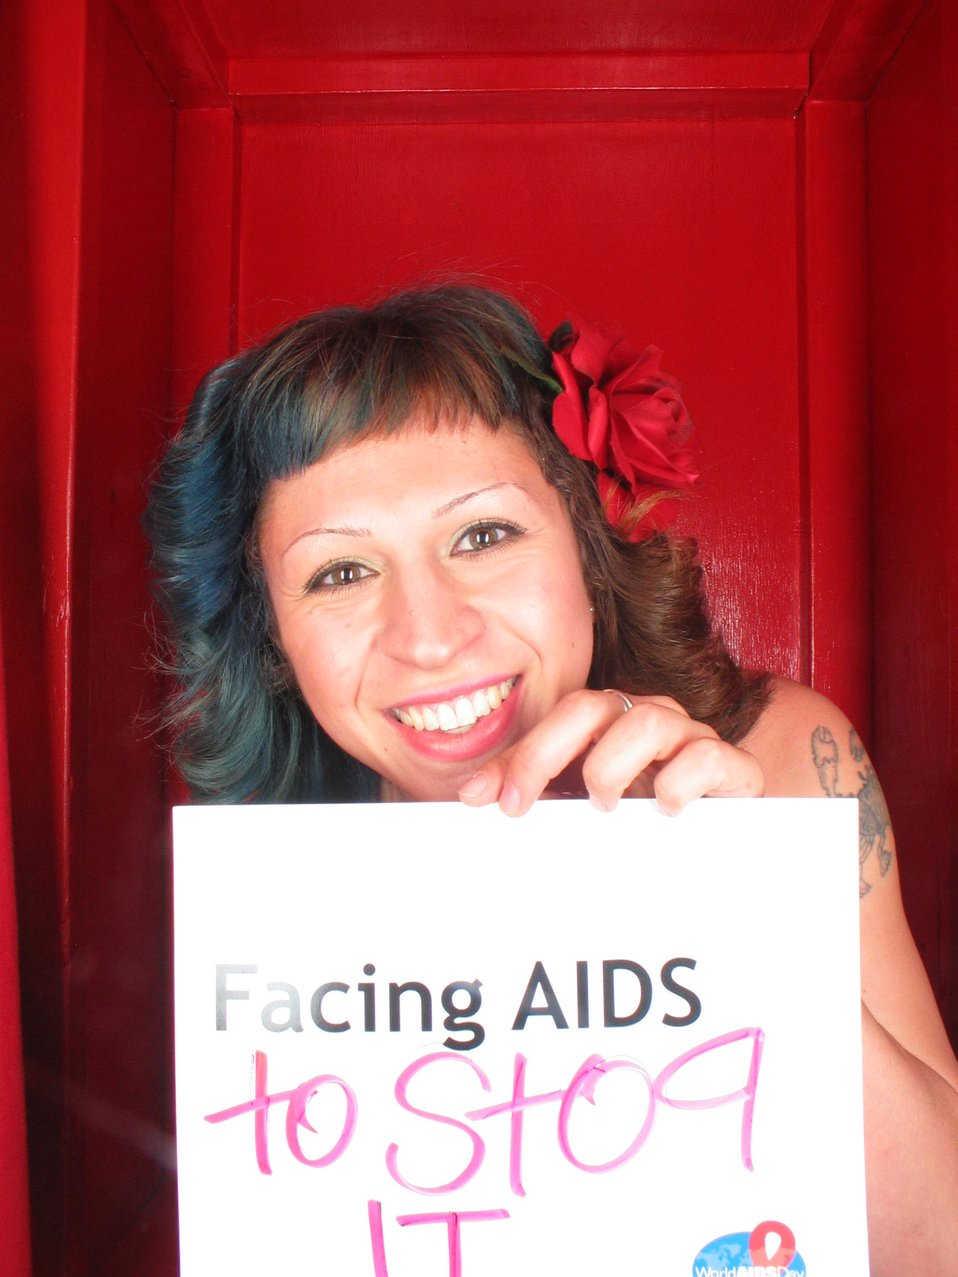 Facing AIDS to stop it